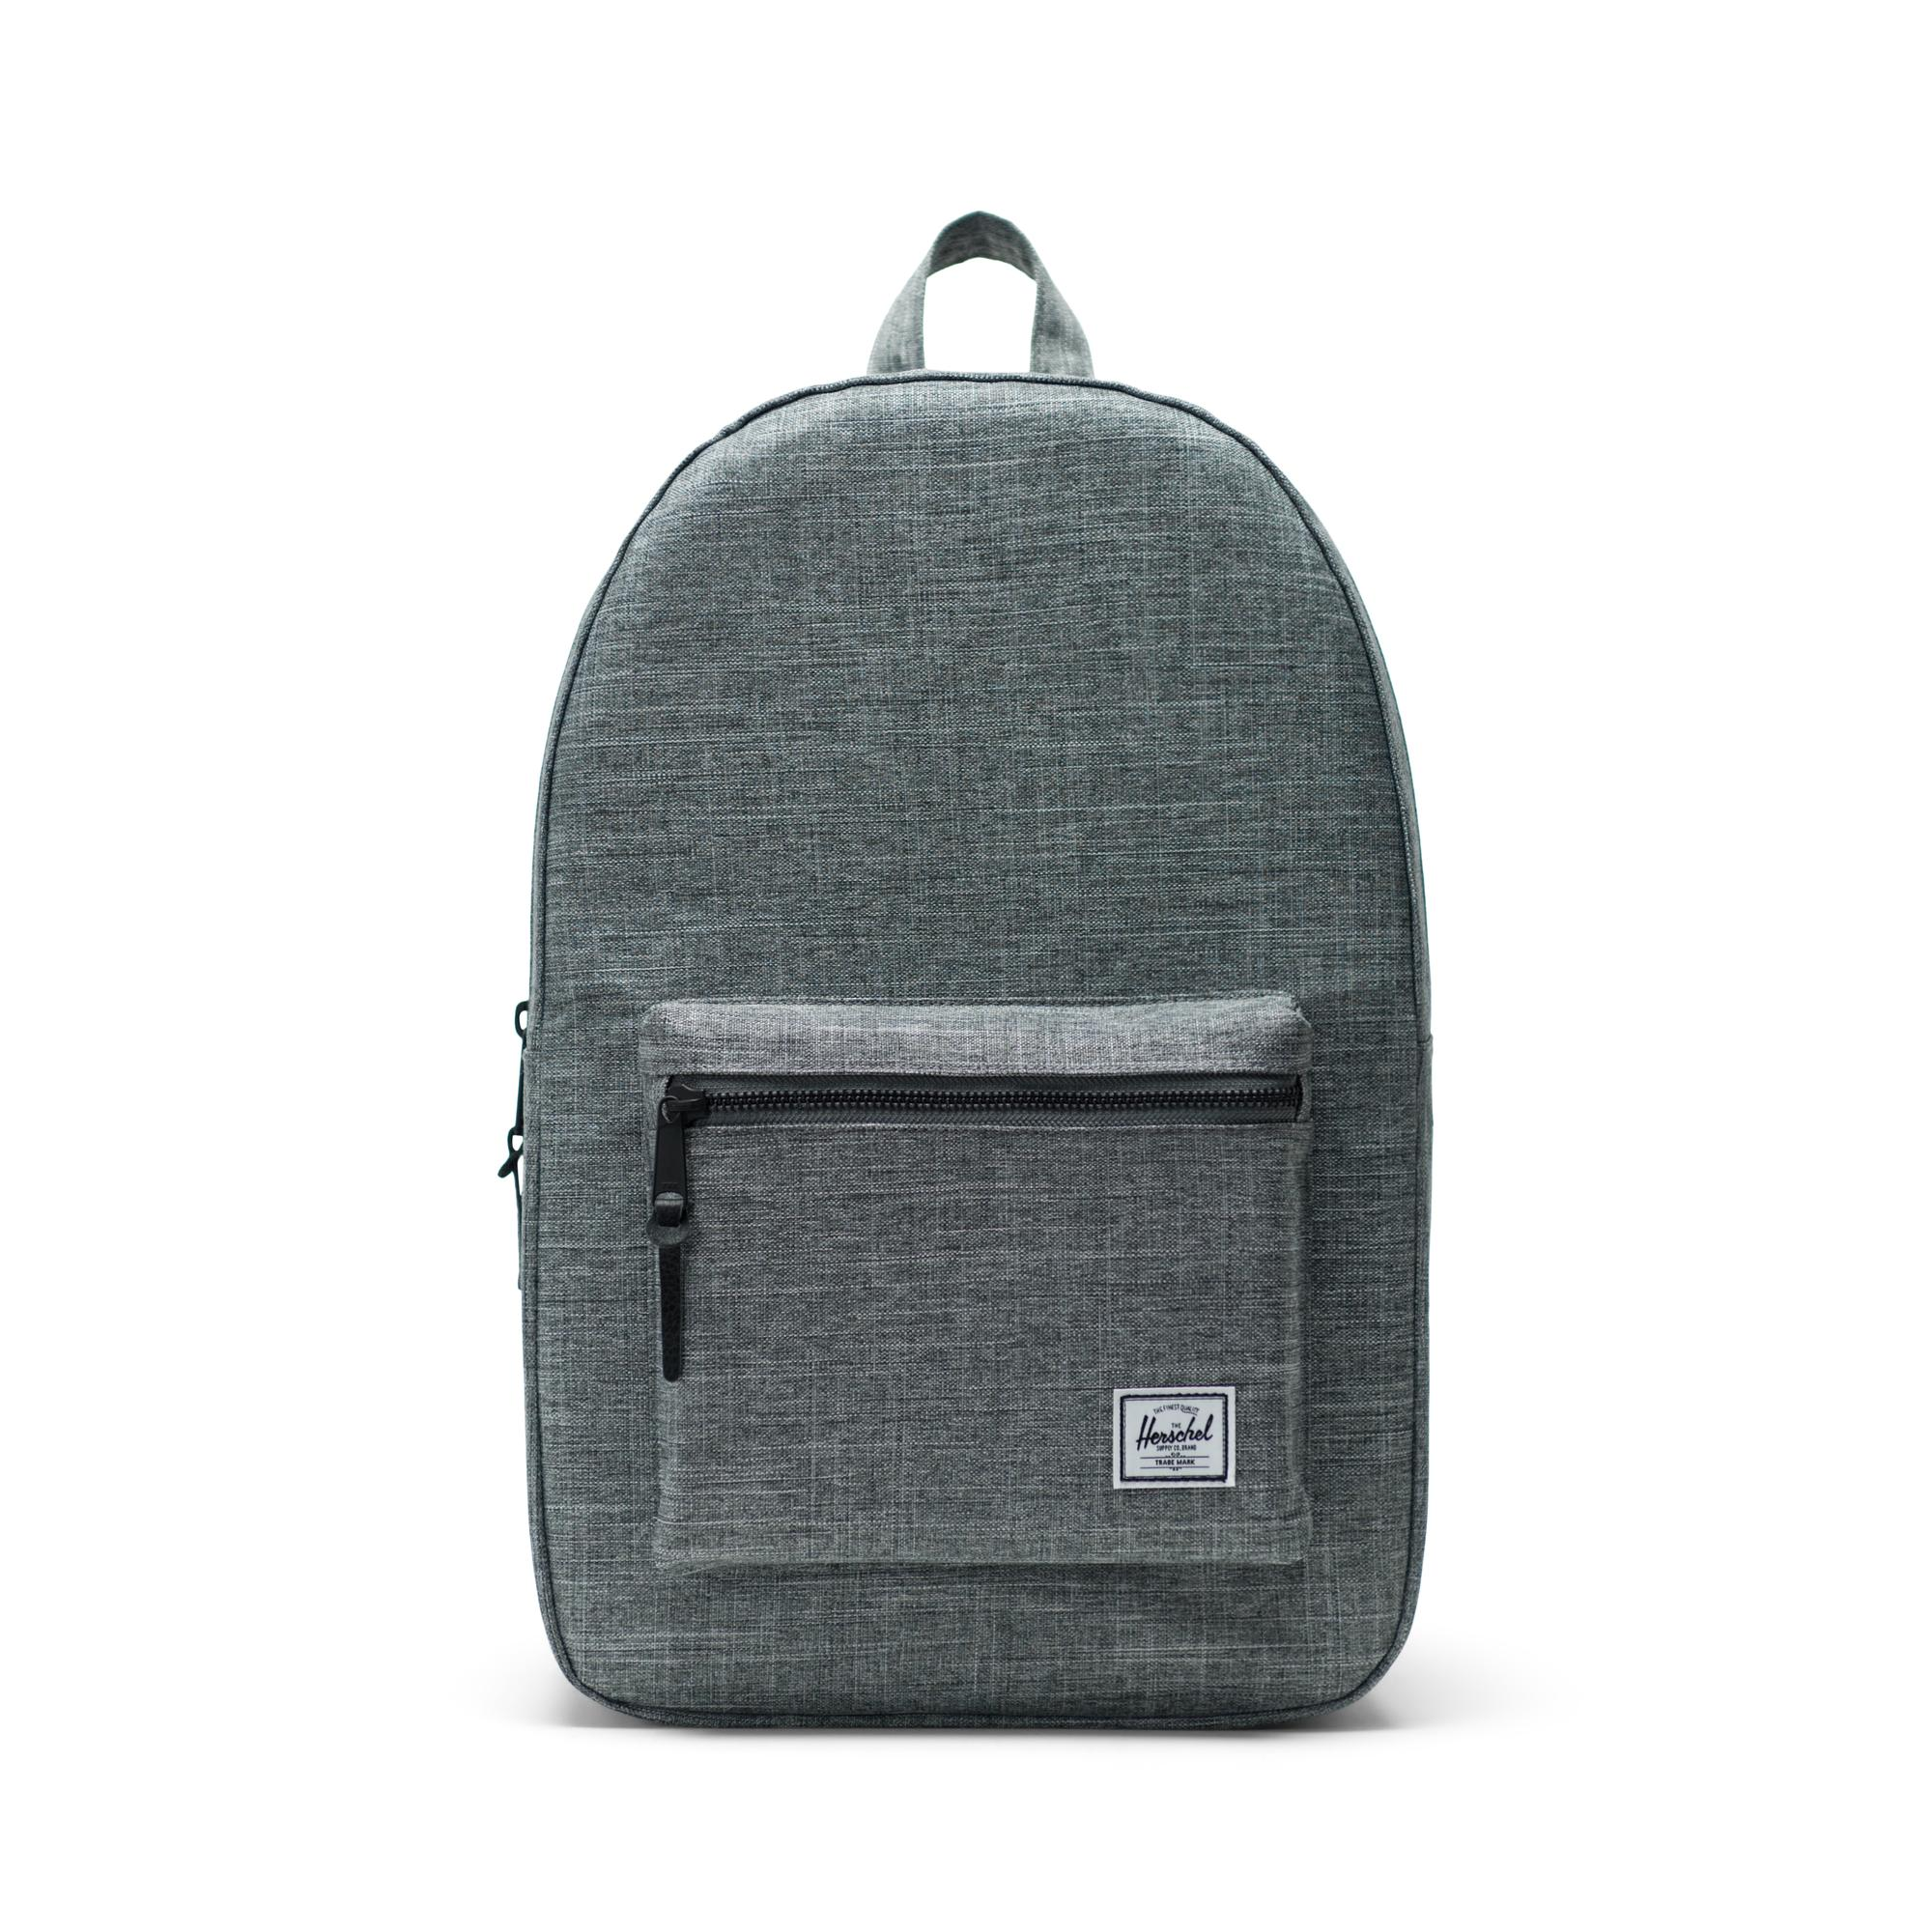 Settlement Backpack   Herschel Supply Company 71ff57816a